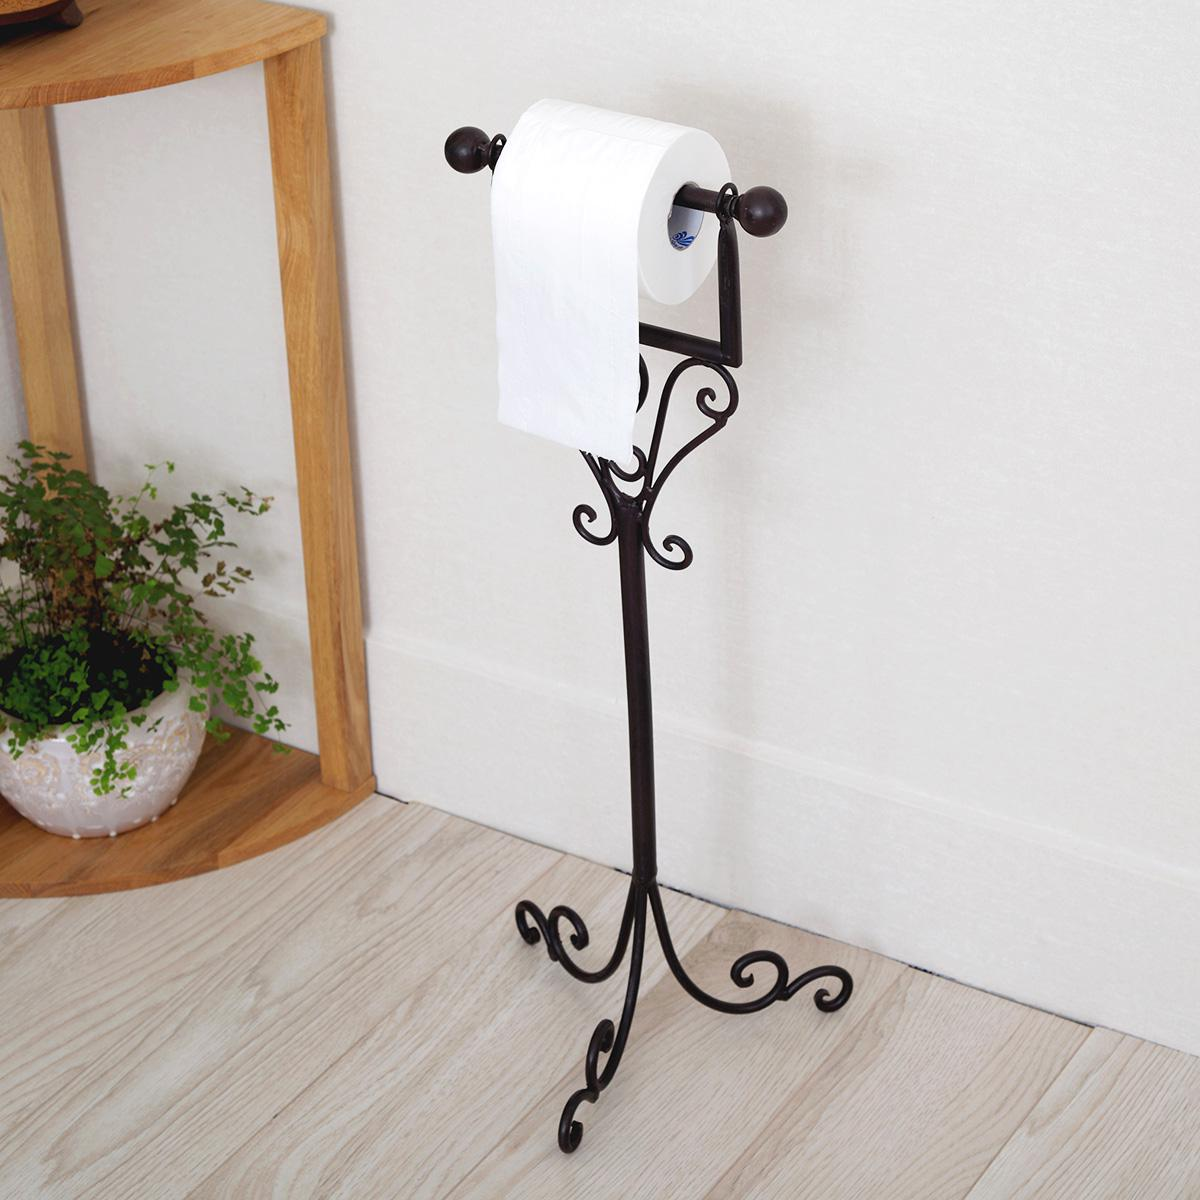 2019 paper towel holder paper towel holder fashion wrought - Wrought iron towel racks bathroom ...